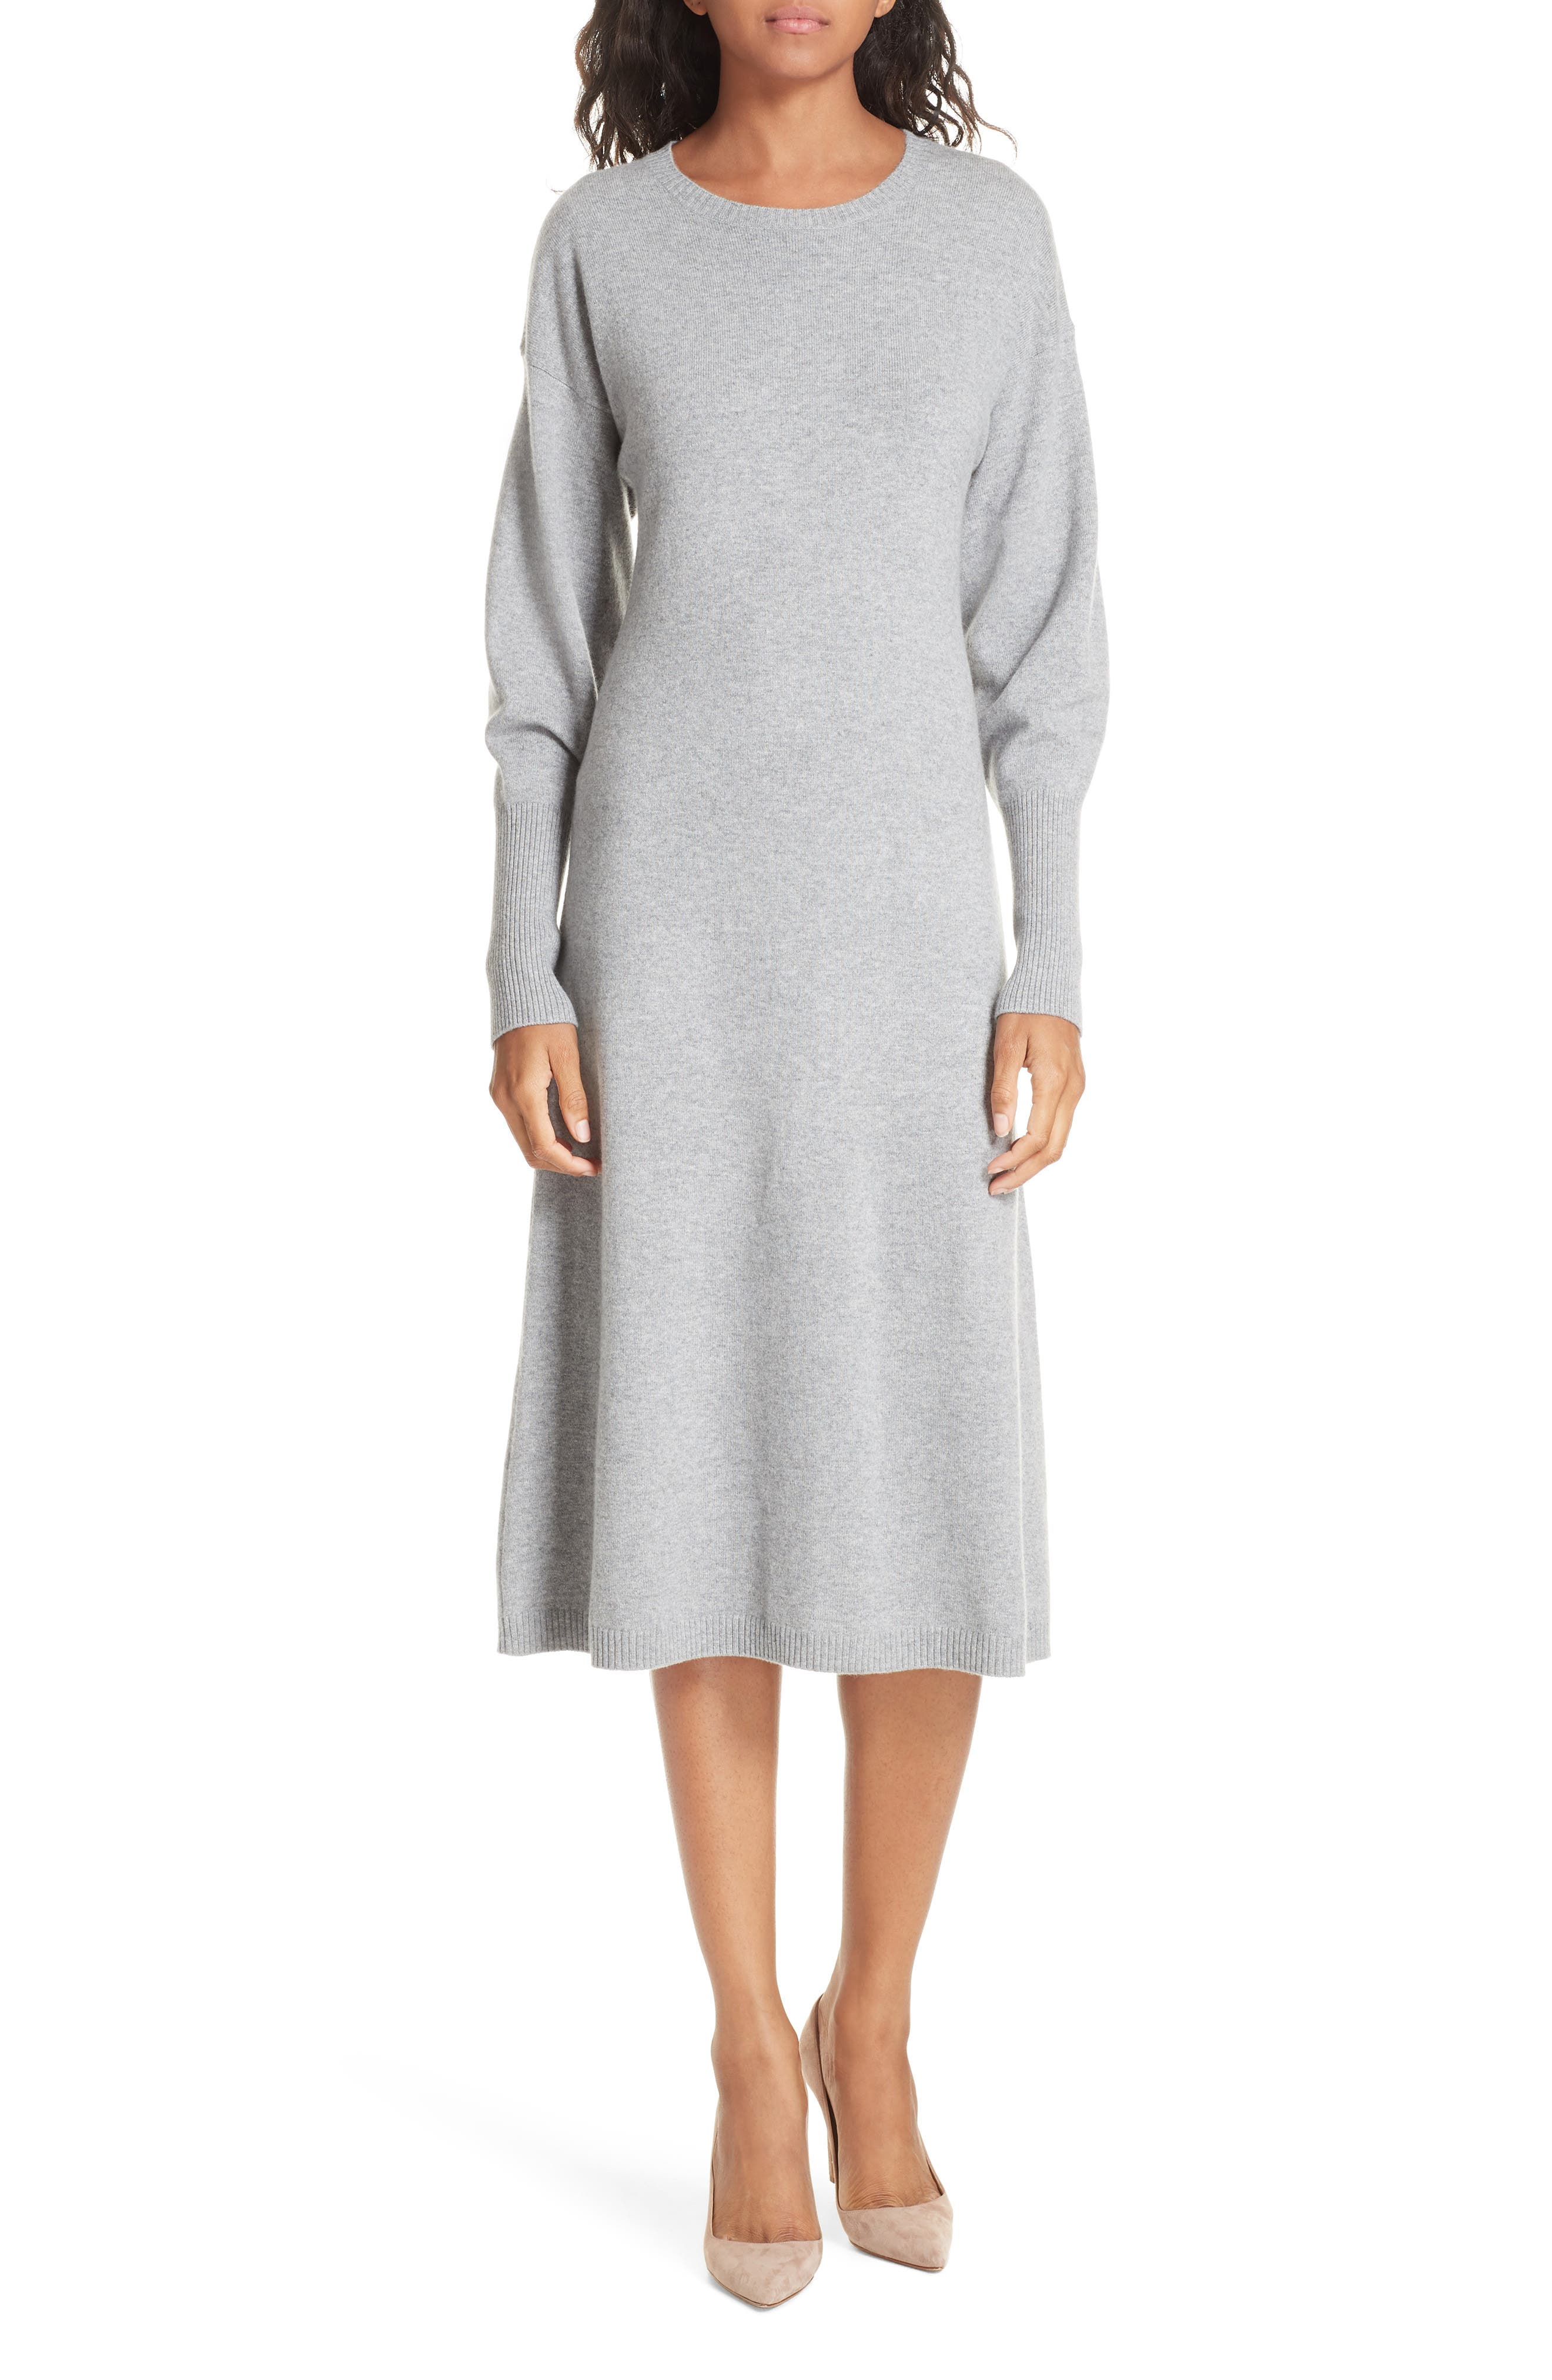 Cashmere Blend Sweater Dress,                             Main thumbnail 1, color,                             030